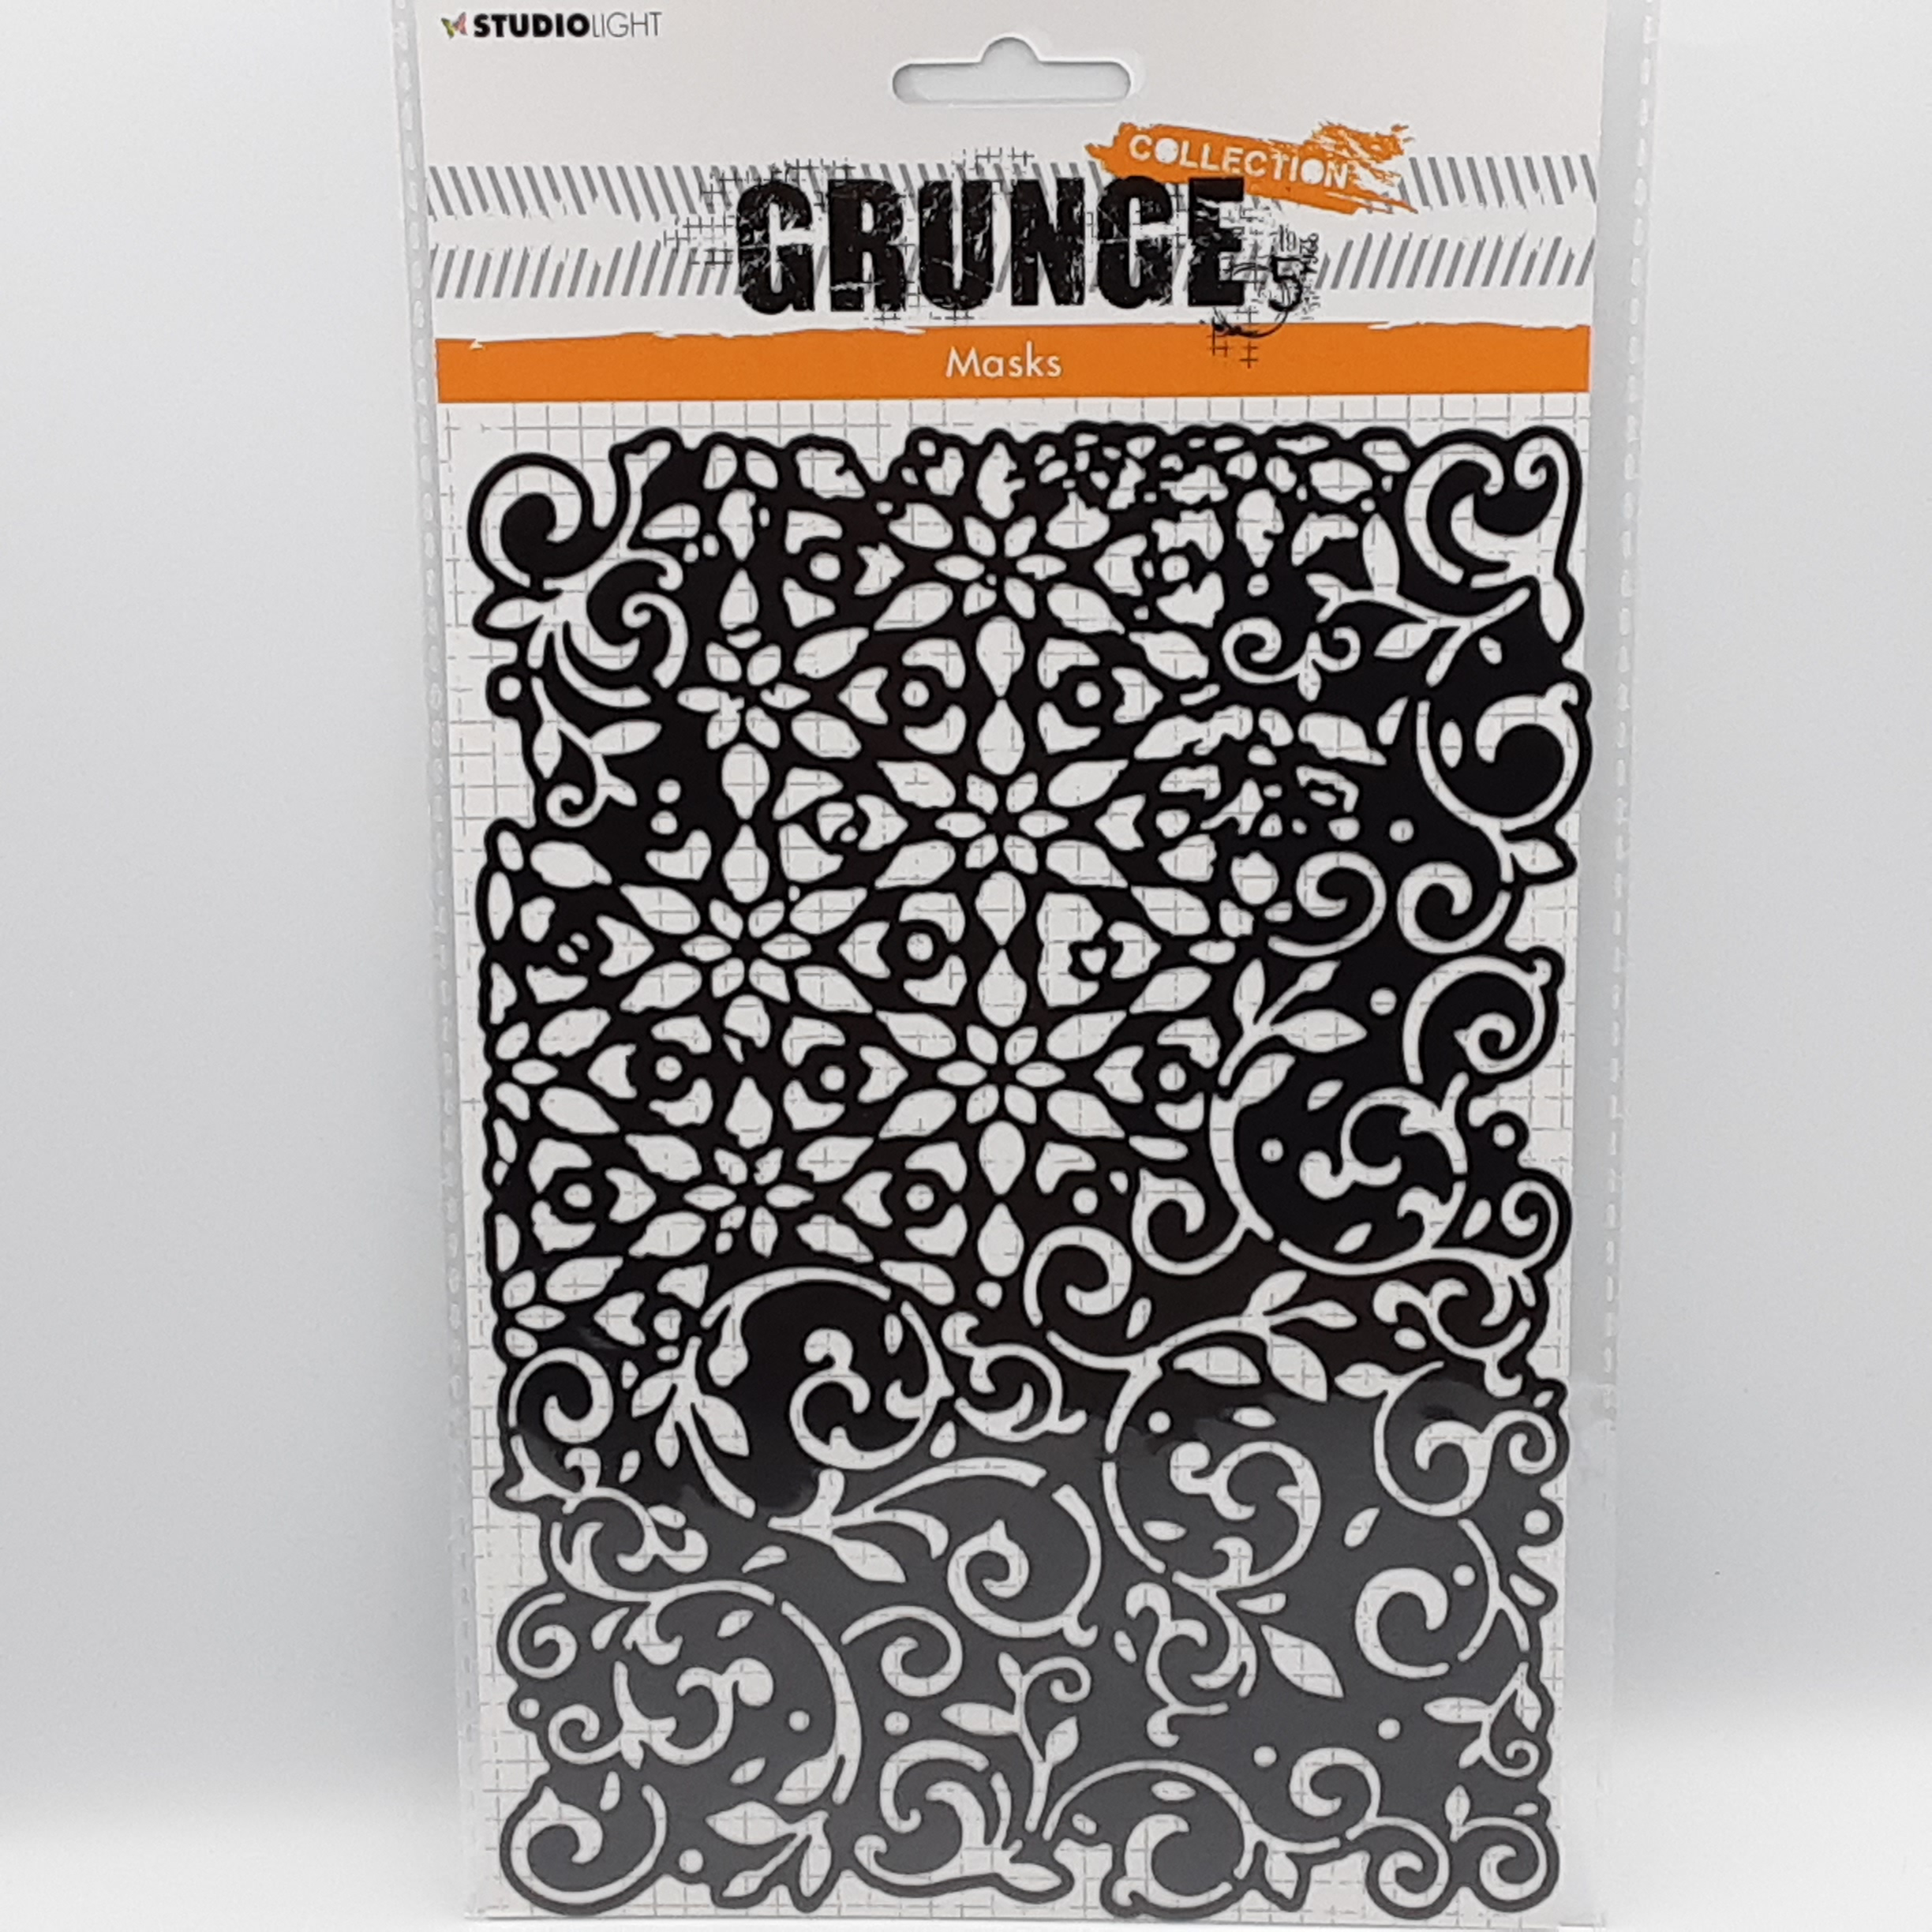 Grunge collection mask nr 51